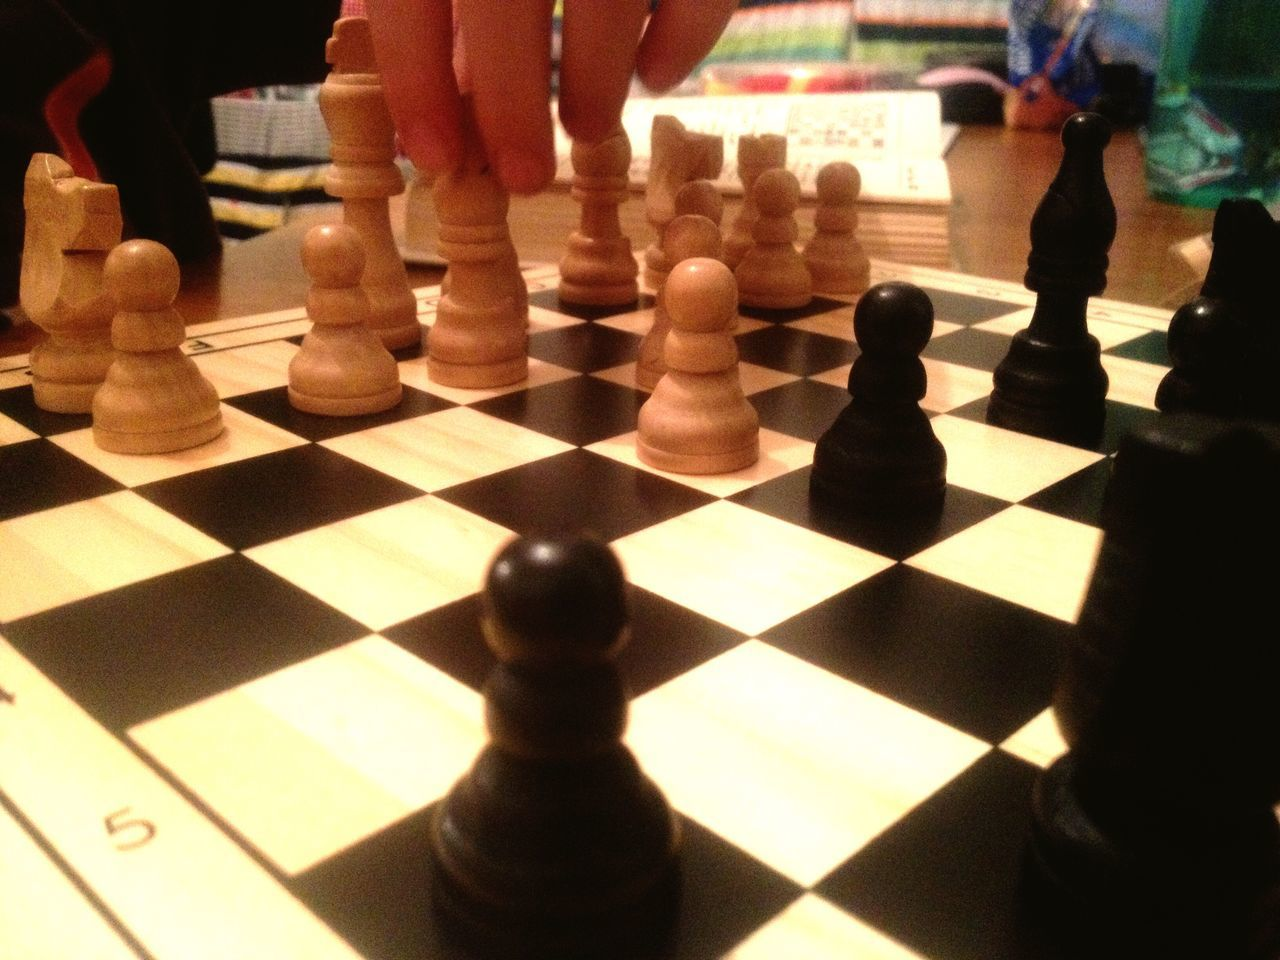 A game of chess. Chess Chessboard Chesspieces Chess Piece Game Fun Play Playing Board Game Strategy Strategic Intellectual Black White Squares Chess Board Pawn Chessmen Chess Men